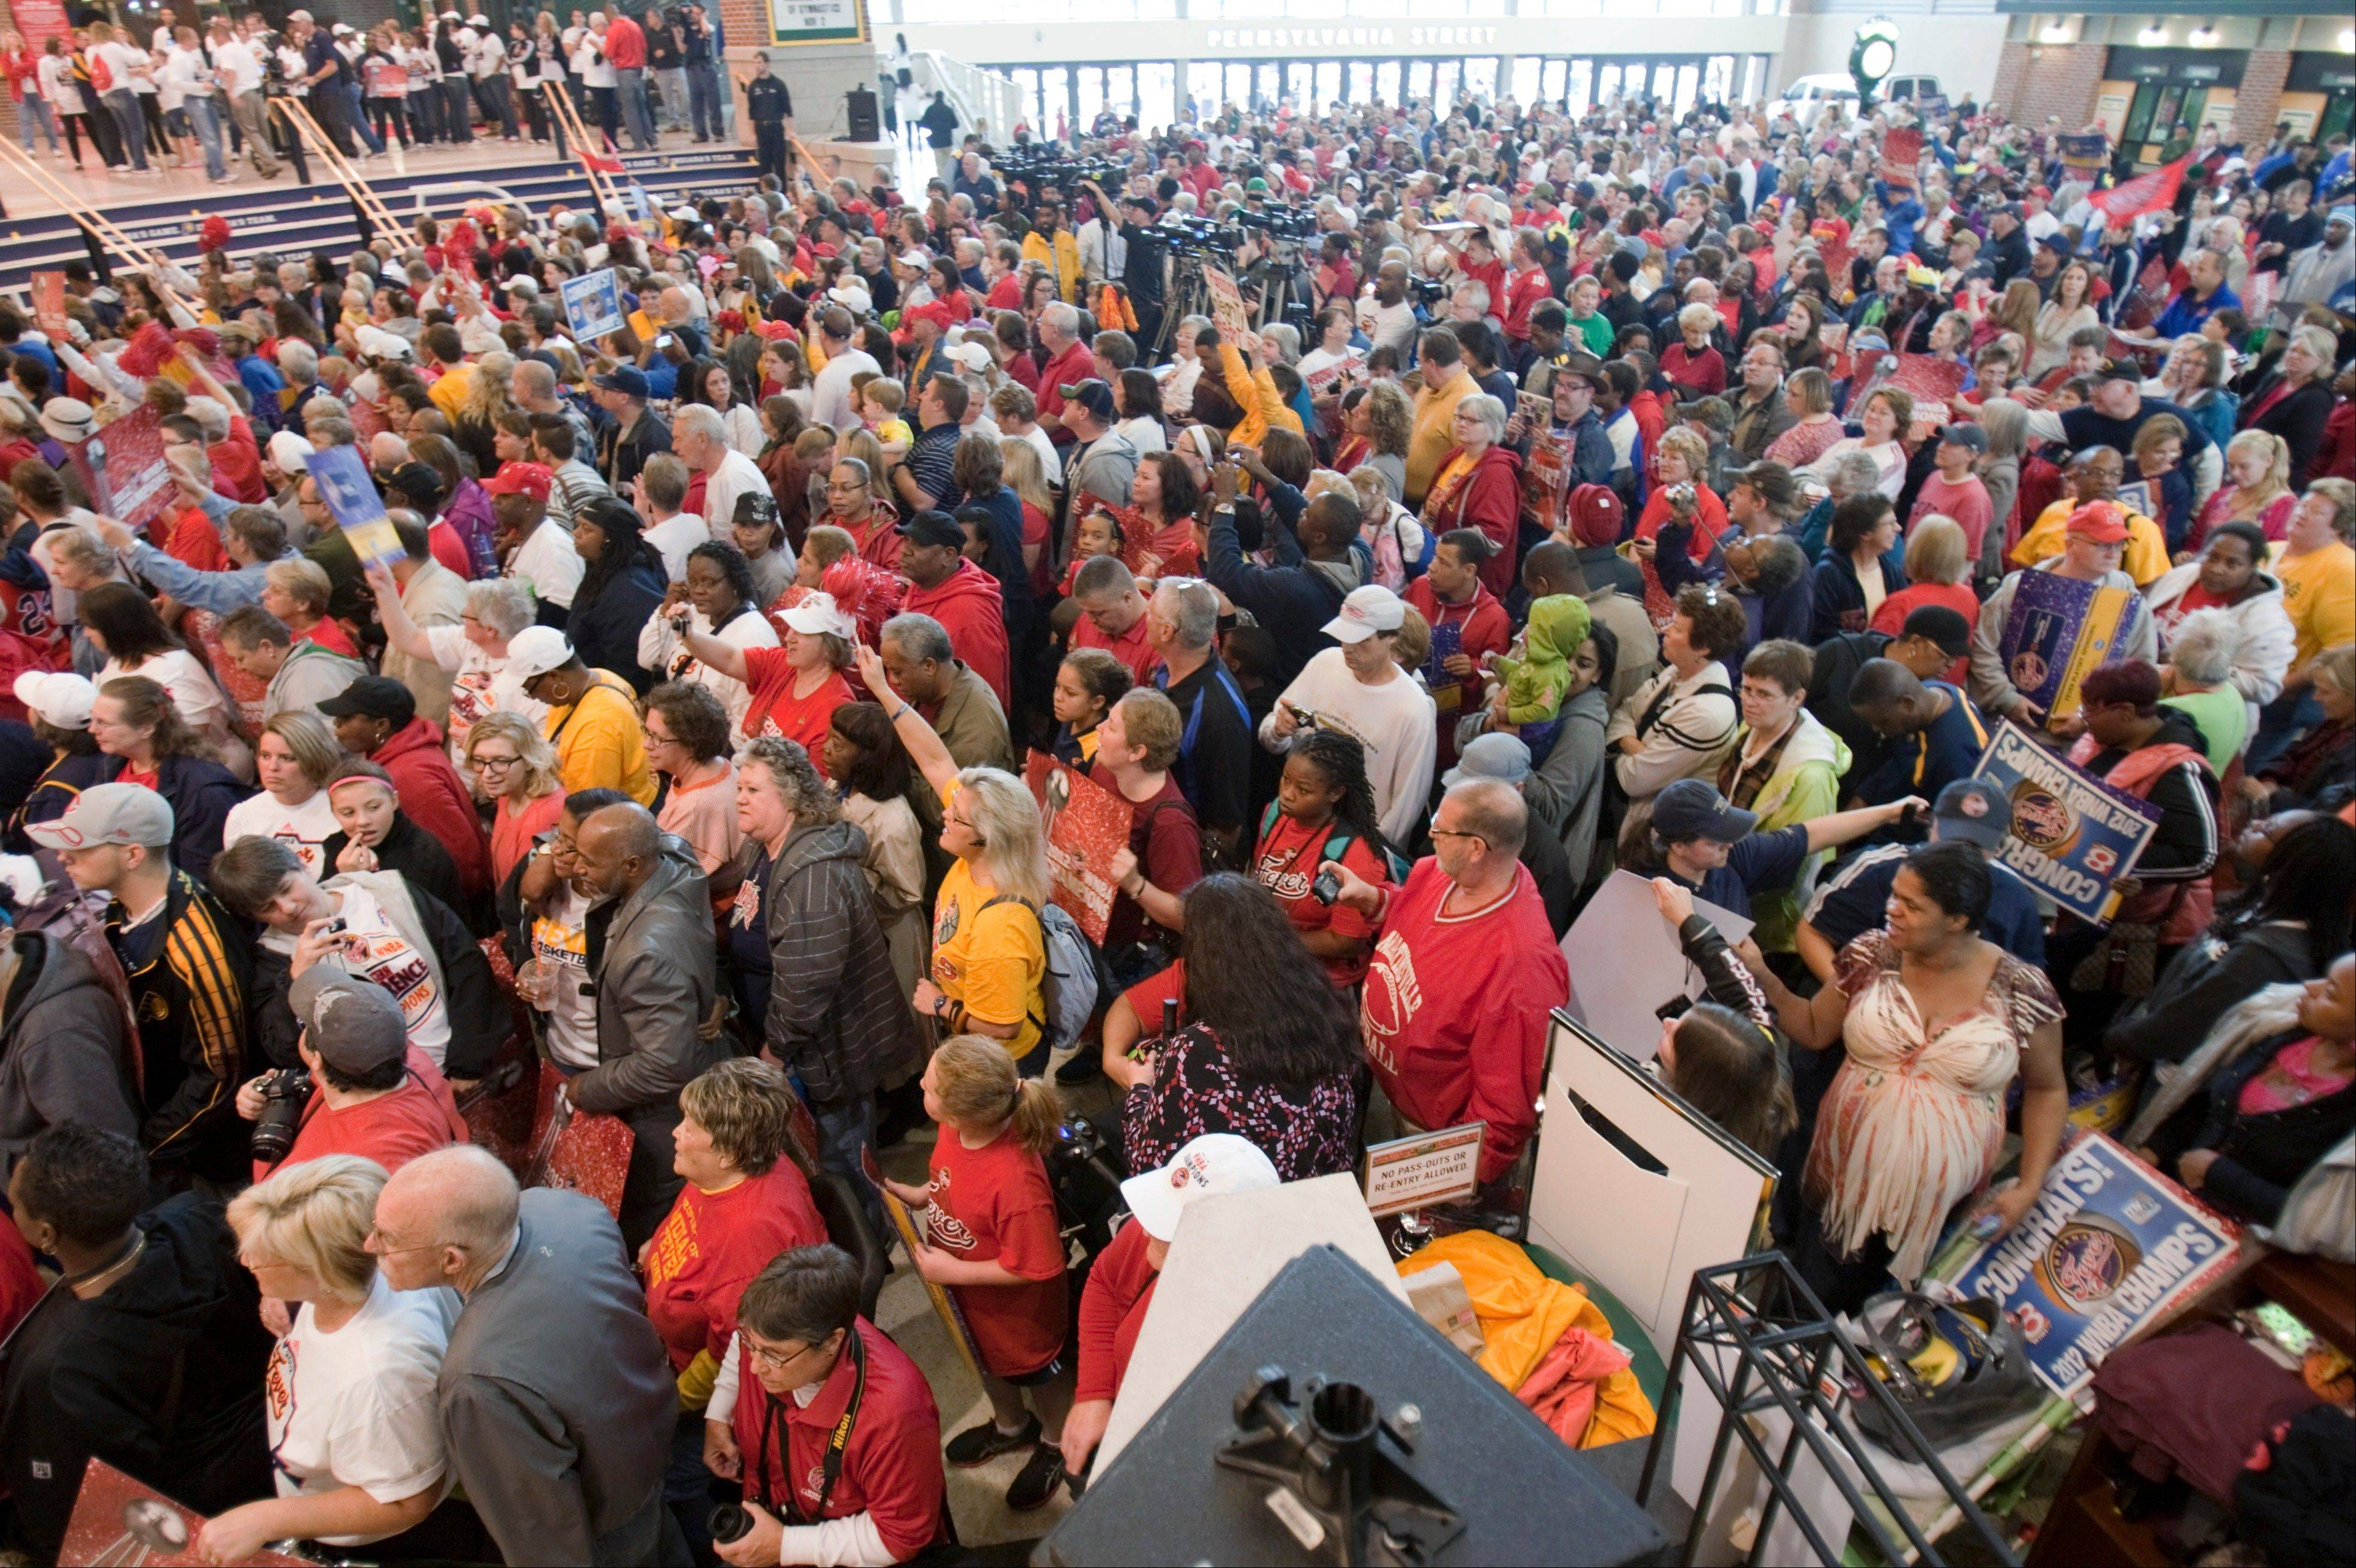 Fans cheer and watch during a celebration for the WNBA-champion Indiana Fever at Bankers Life Fieldhouse on Tuesday in Indianapolis. The team and several thousand fans moved their party indoors as morning rain scrapped plans for a parade.